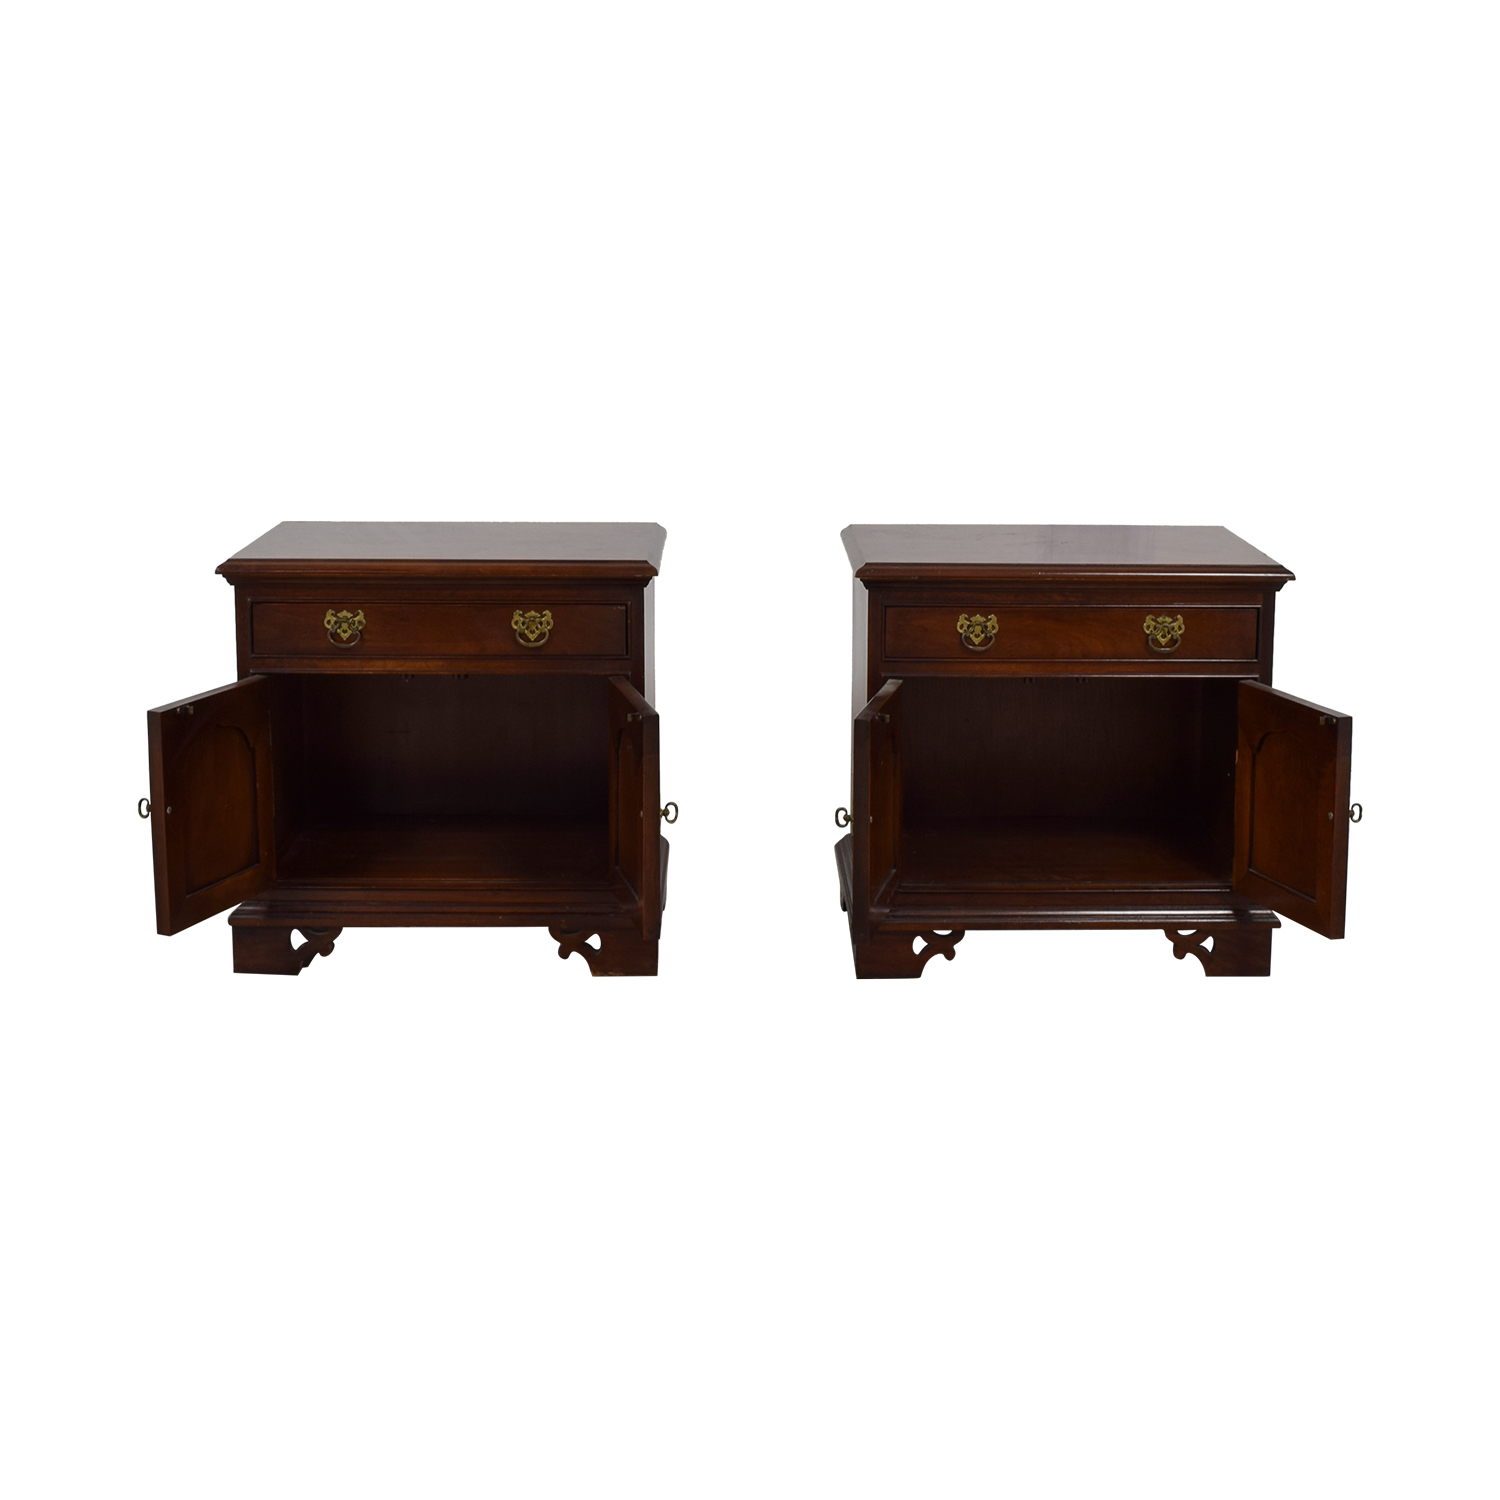 73 off thomasville thomasville cherry wood single drawer nightstands tables